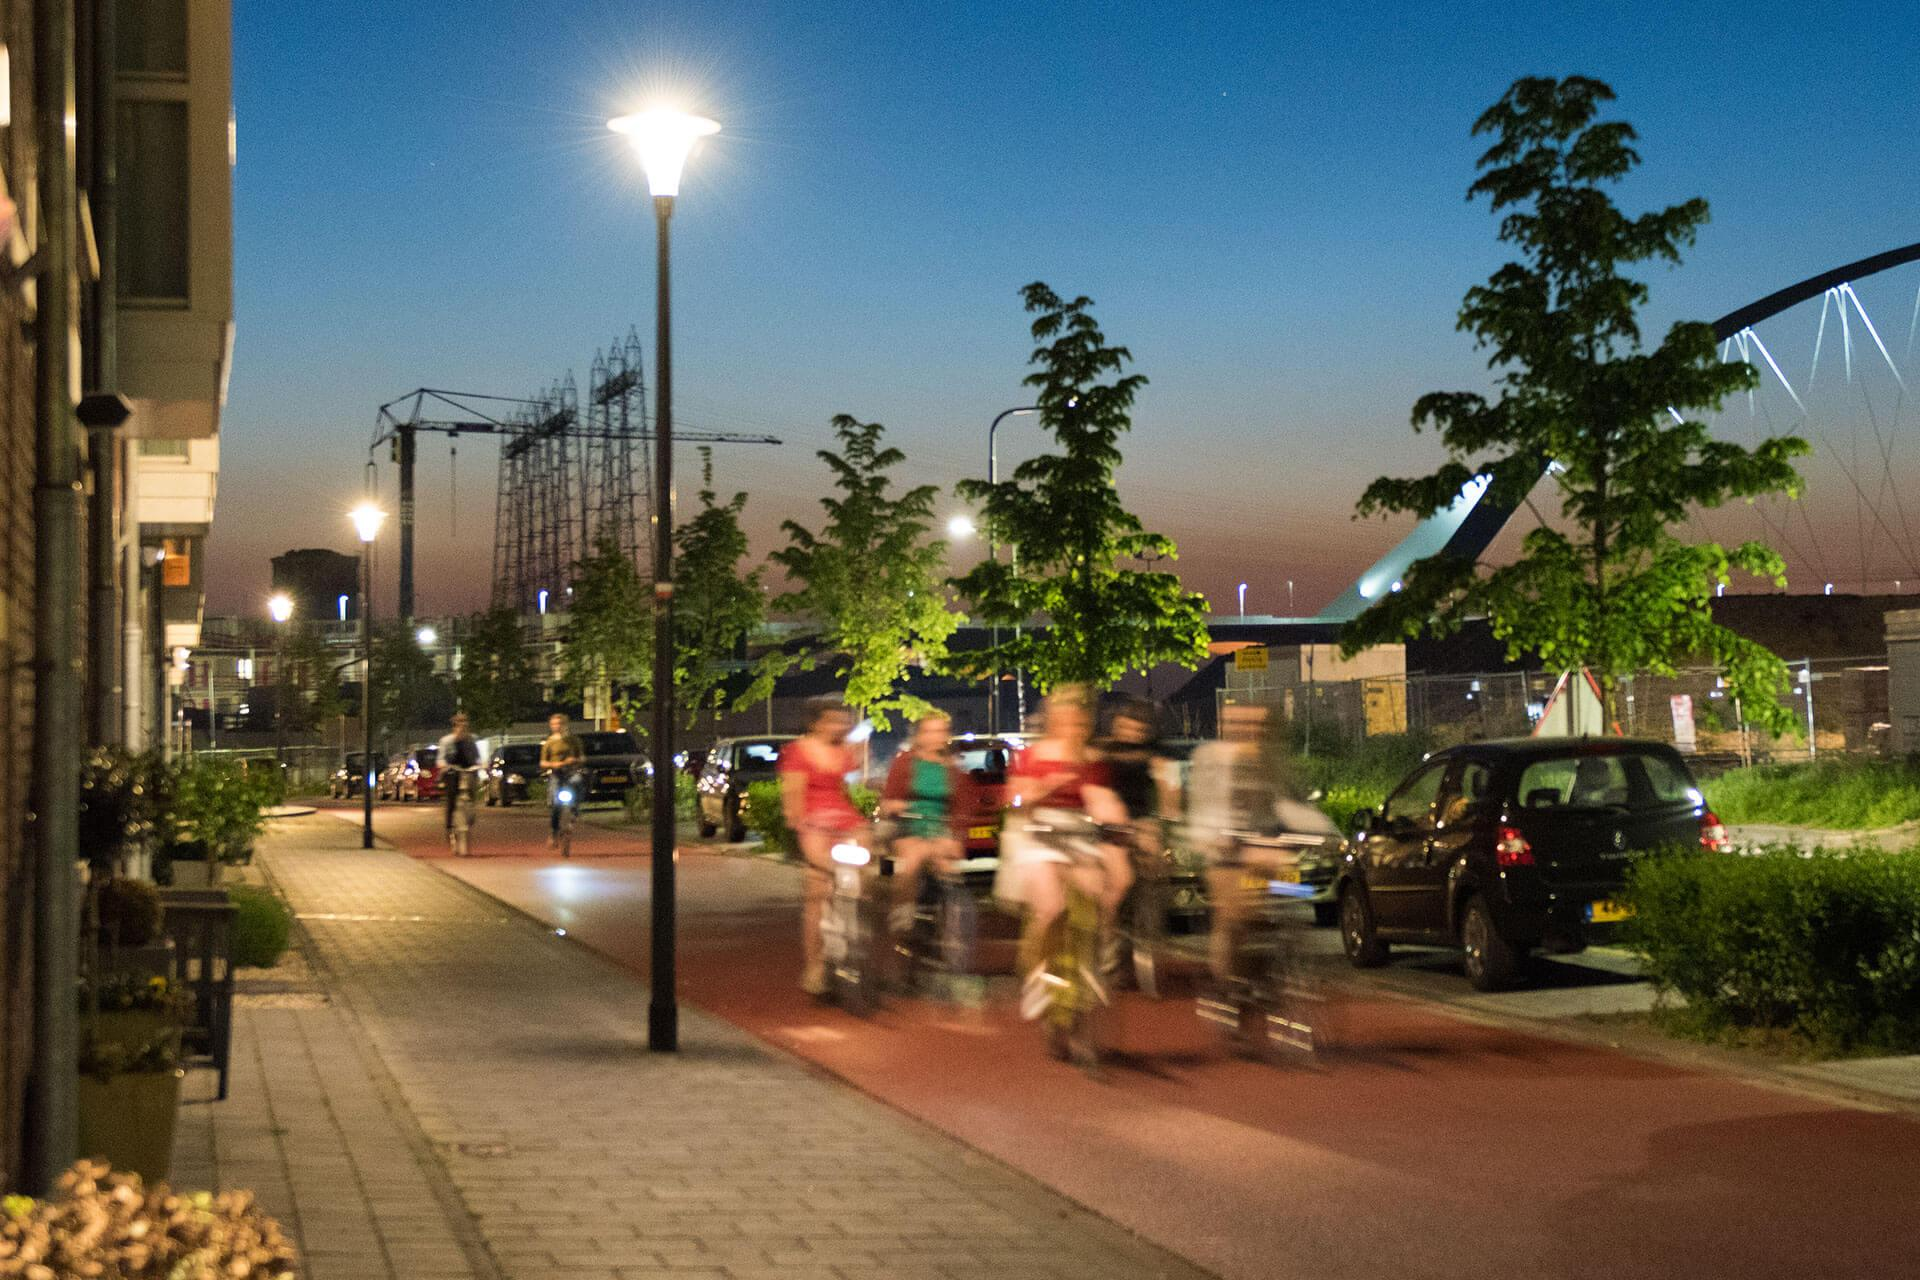 Energy efficient Pilzeo luminaire not only lights Koningsdaal but also enhances the nocturnal landscape